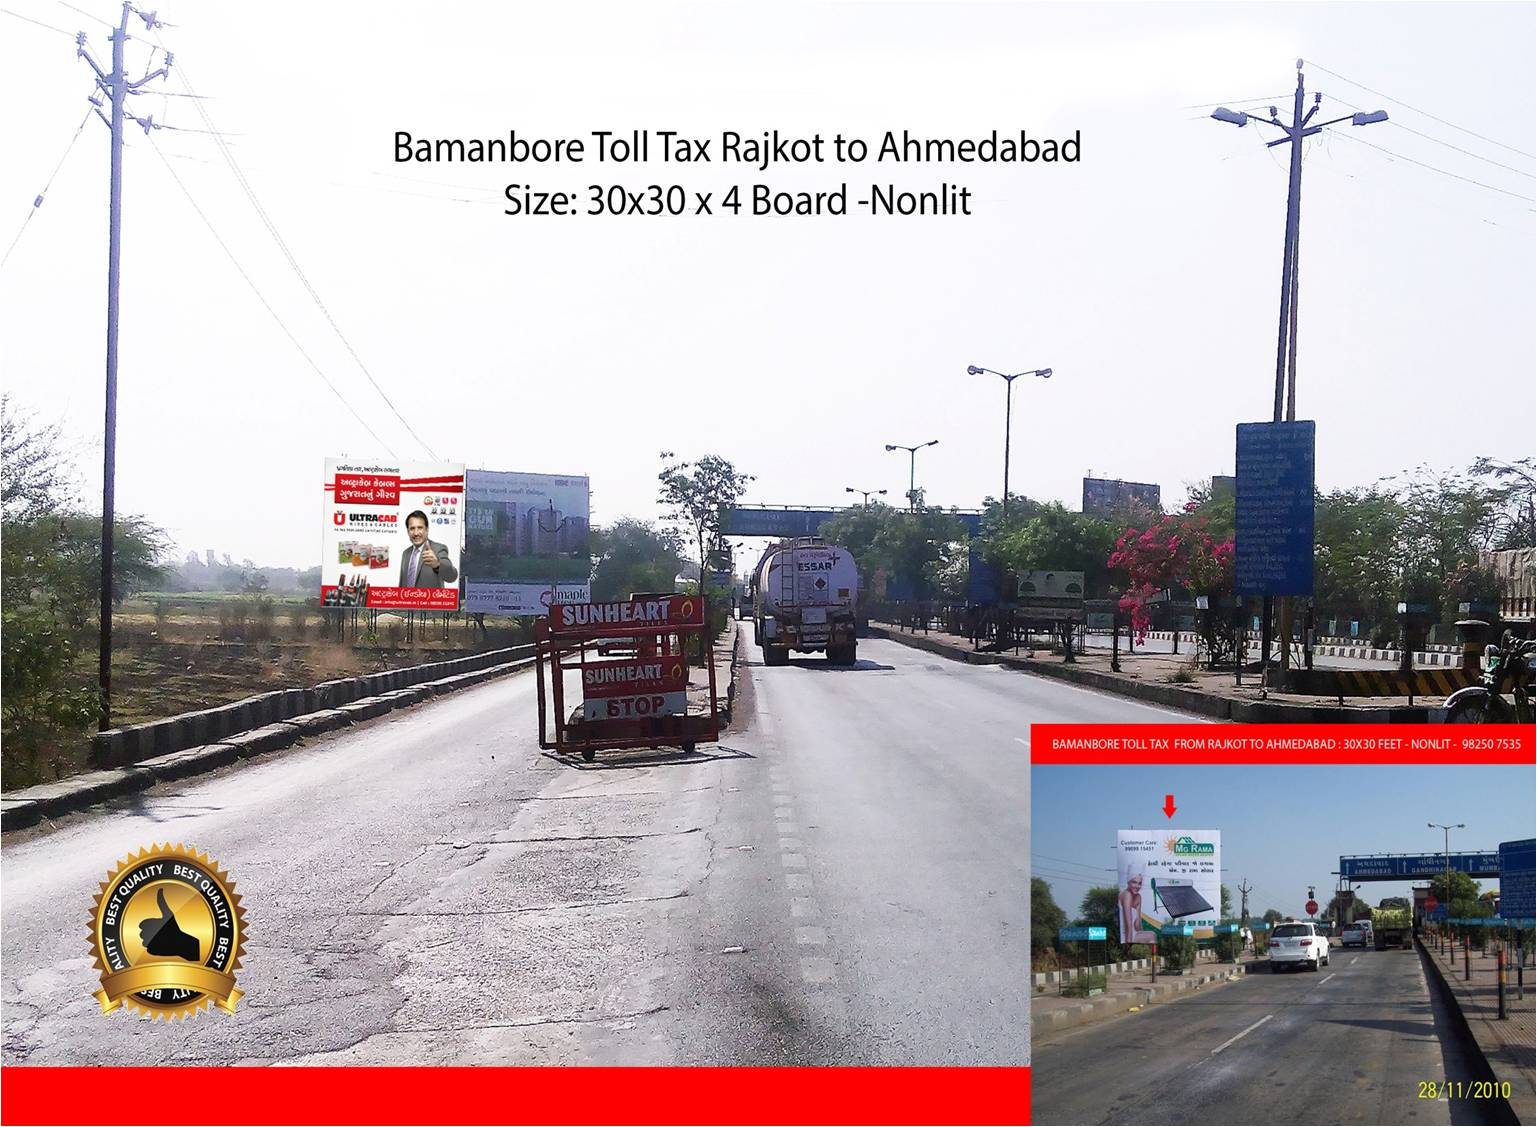 Bamanbore,Toll Tax Rajkot